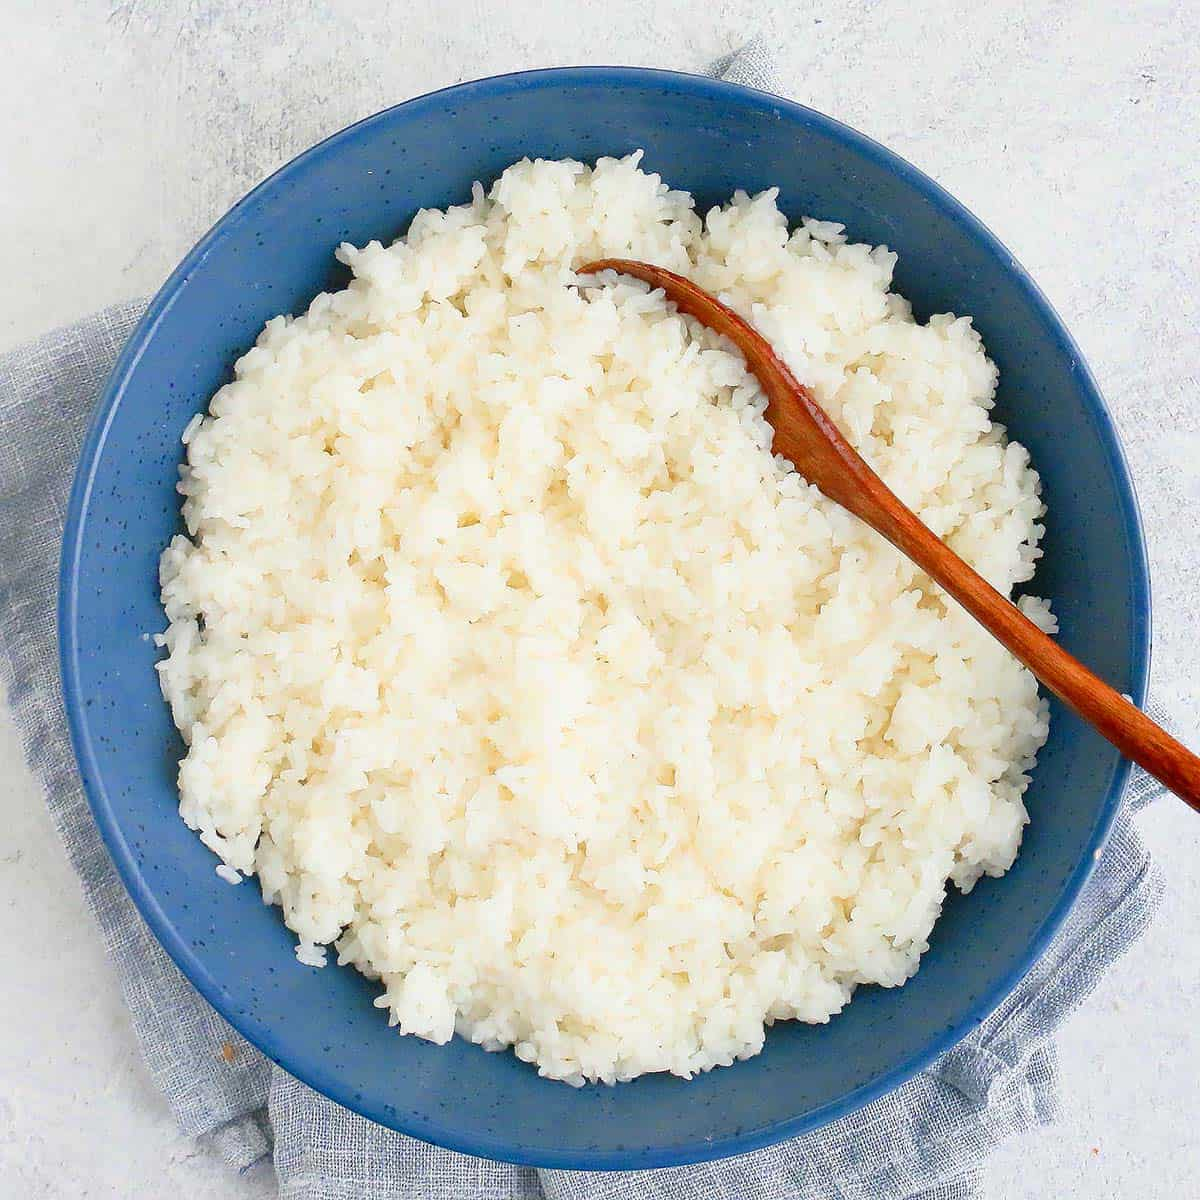 sushi rice served in a large round blue bowl